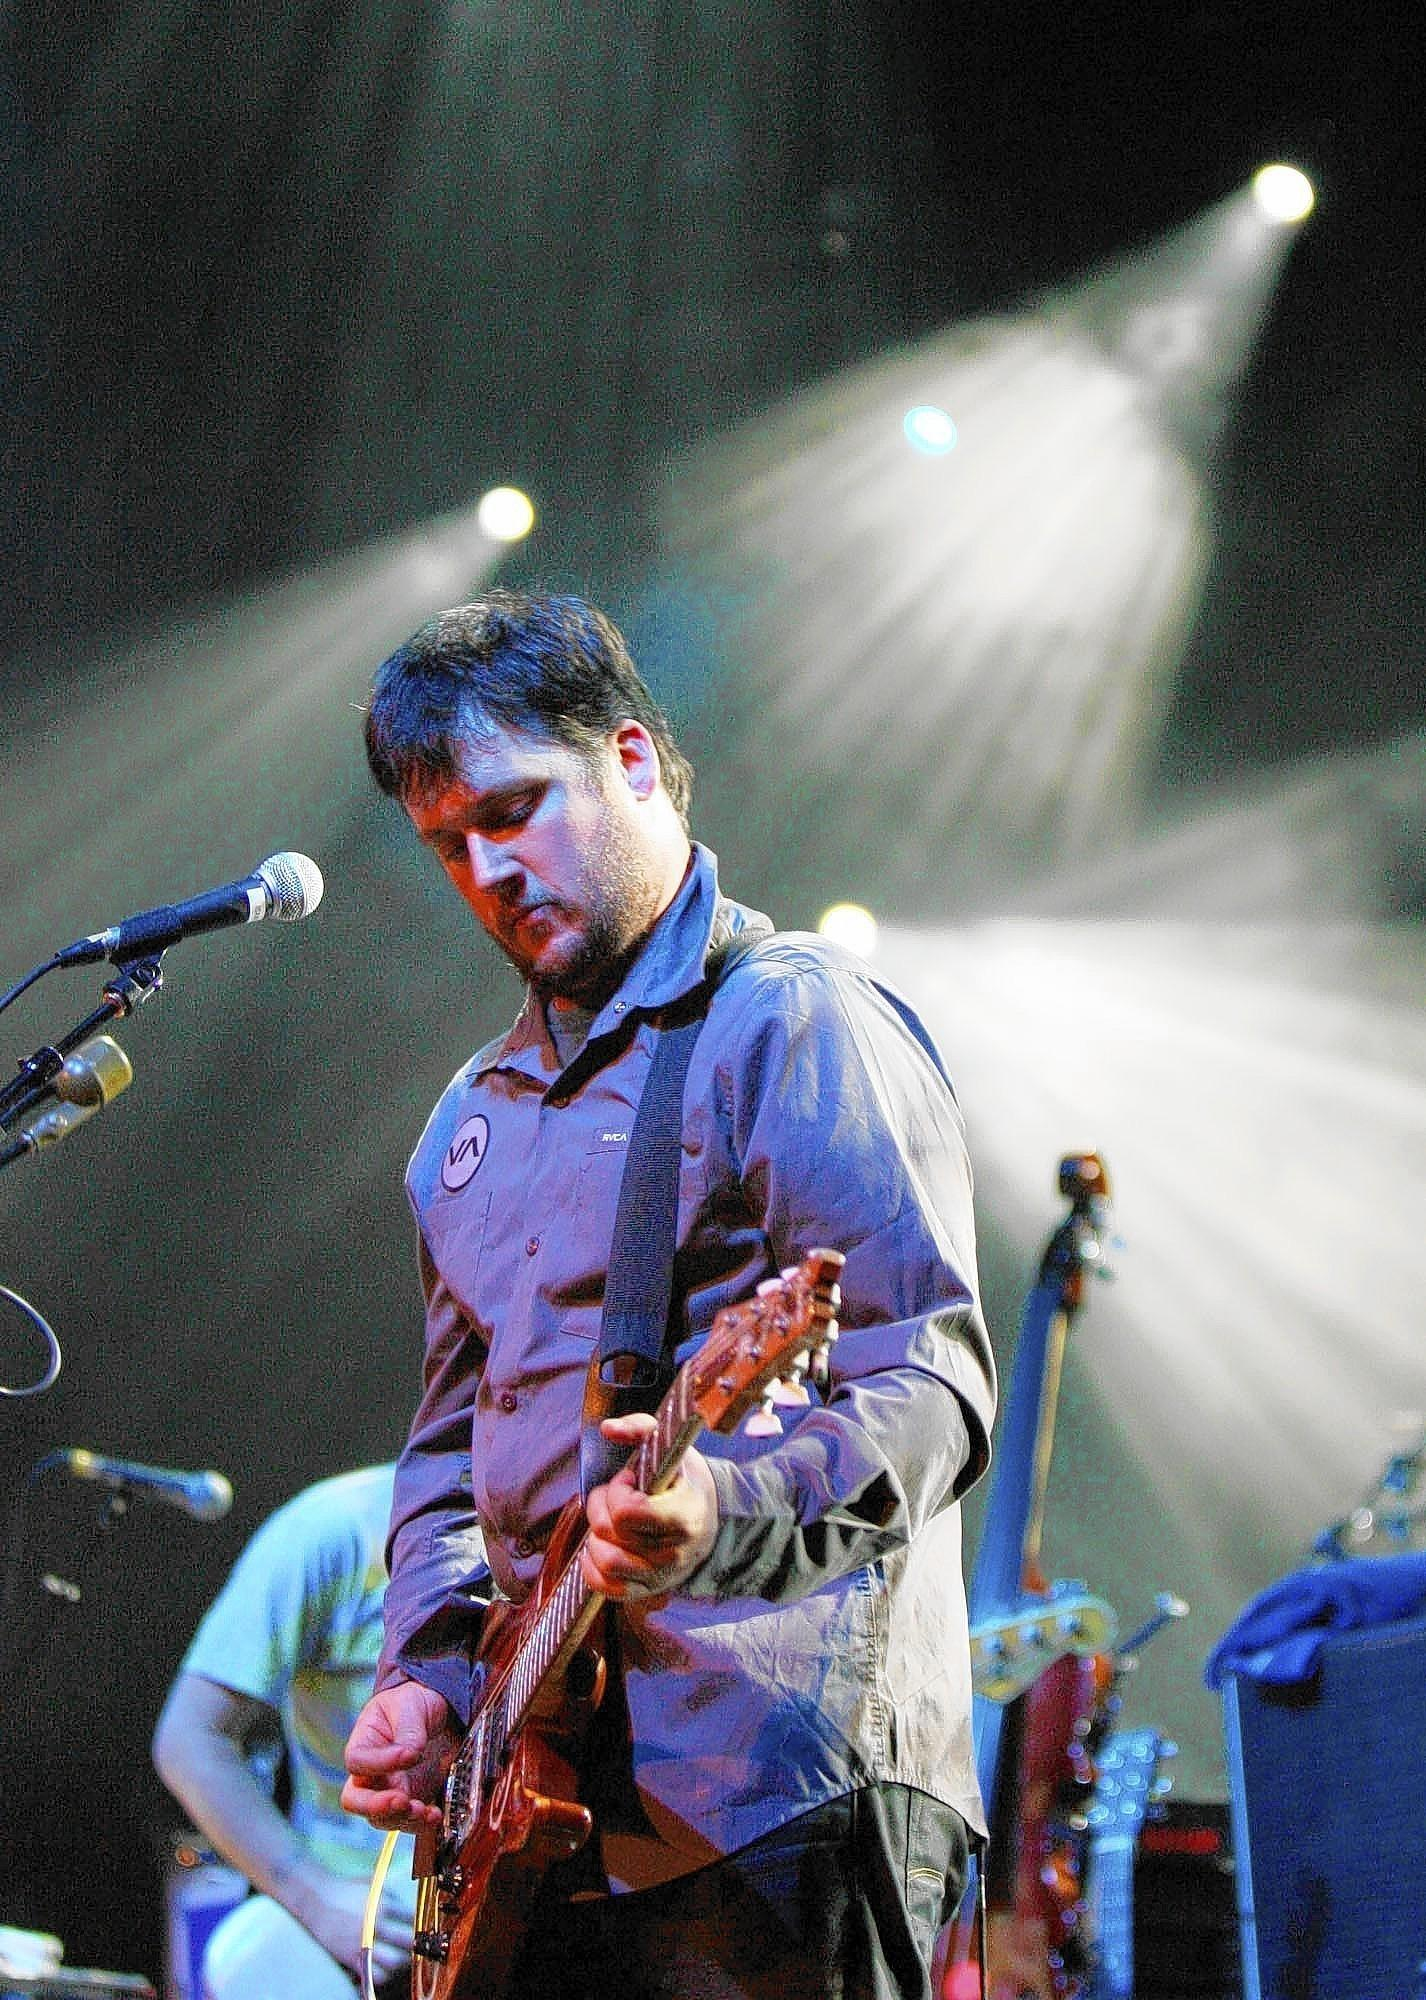 Modest Mouse, pictured here at Hard Rock Live in 2009, has a long relationship with the Orlando concert scene.